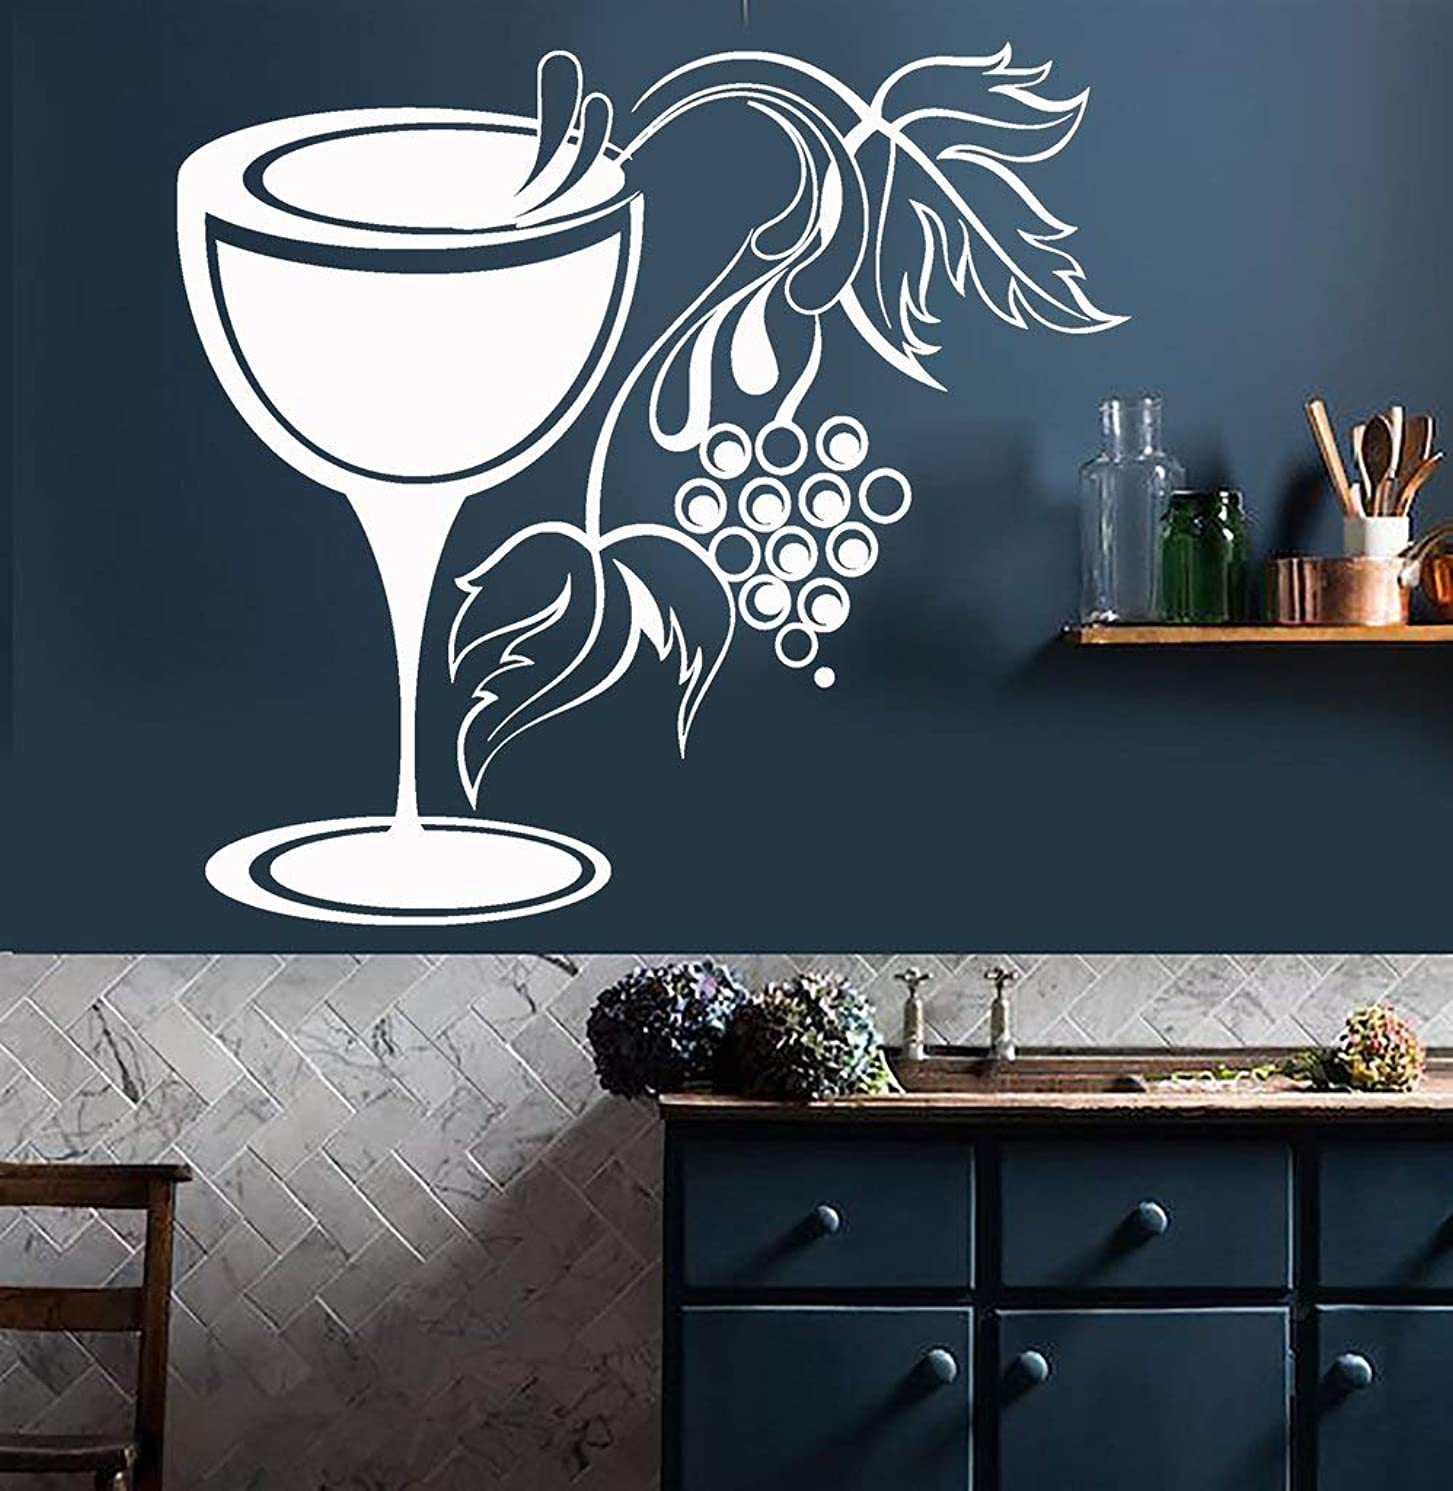 Tenriy Vinyl Decal Quote Art Wall Sticker Mirror Decal Glass Grapes Wine Shop for Kitchen Or Dining Room